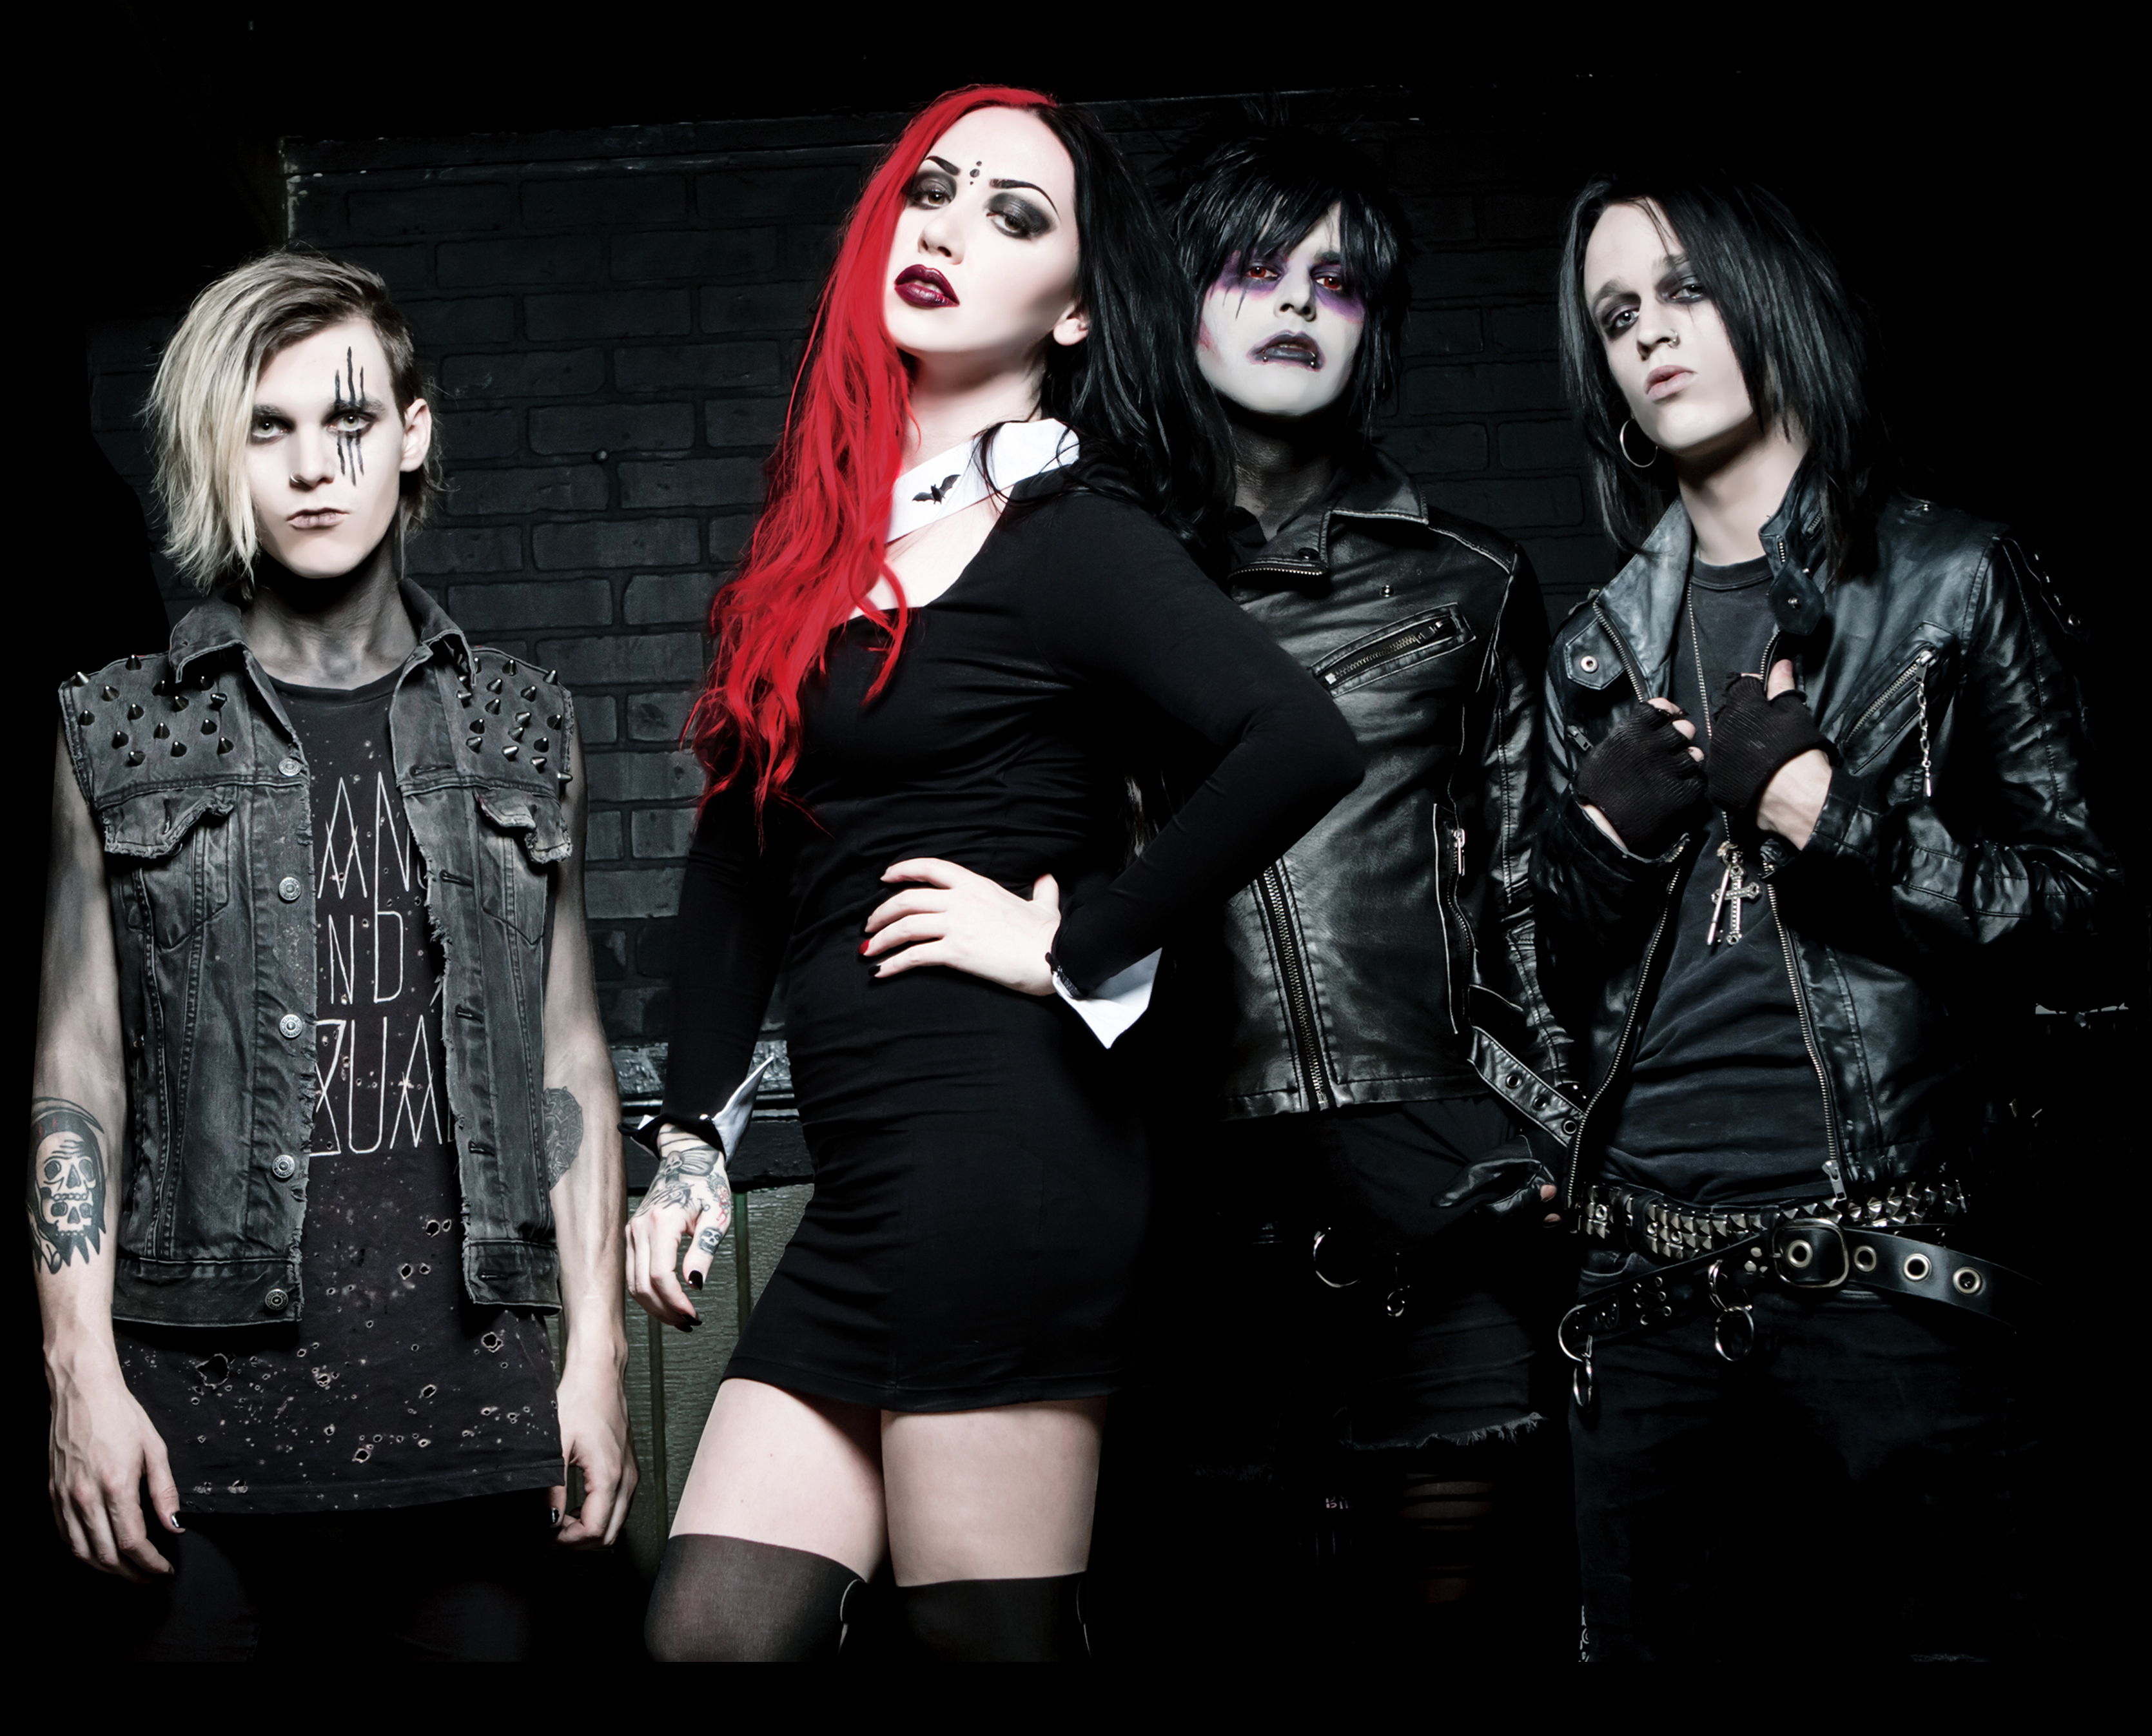 NEW YEARS DAY GET SCARED EYES SET TO KILL THE RELAPSE 3338x2693